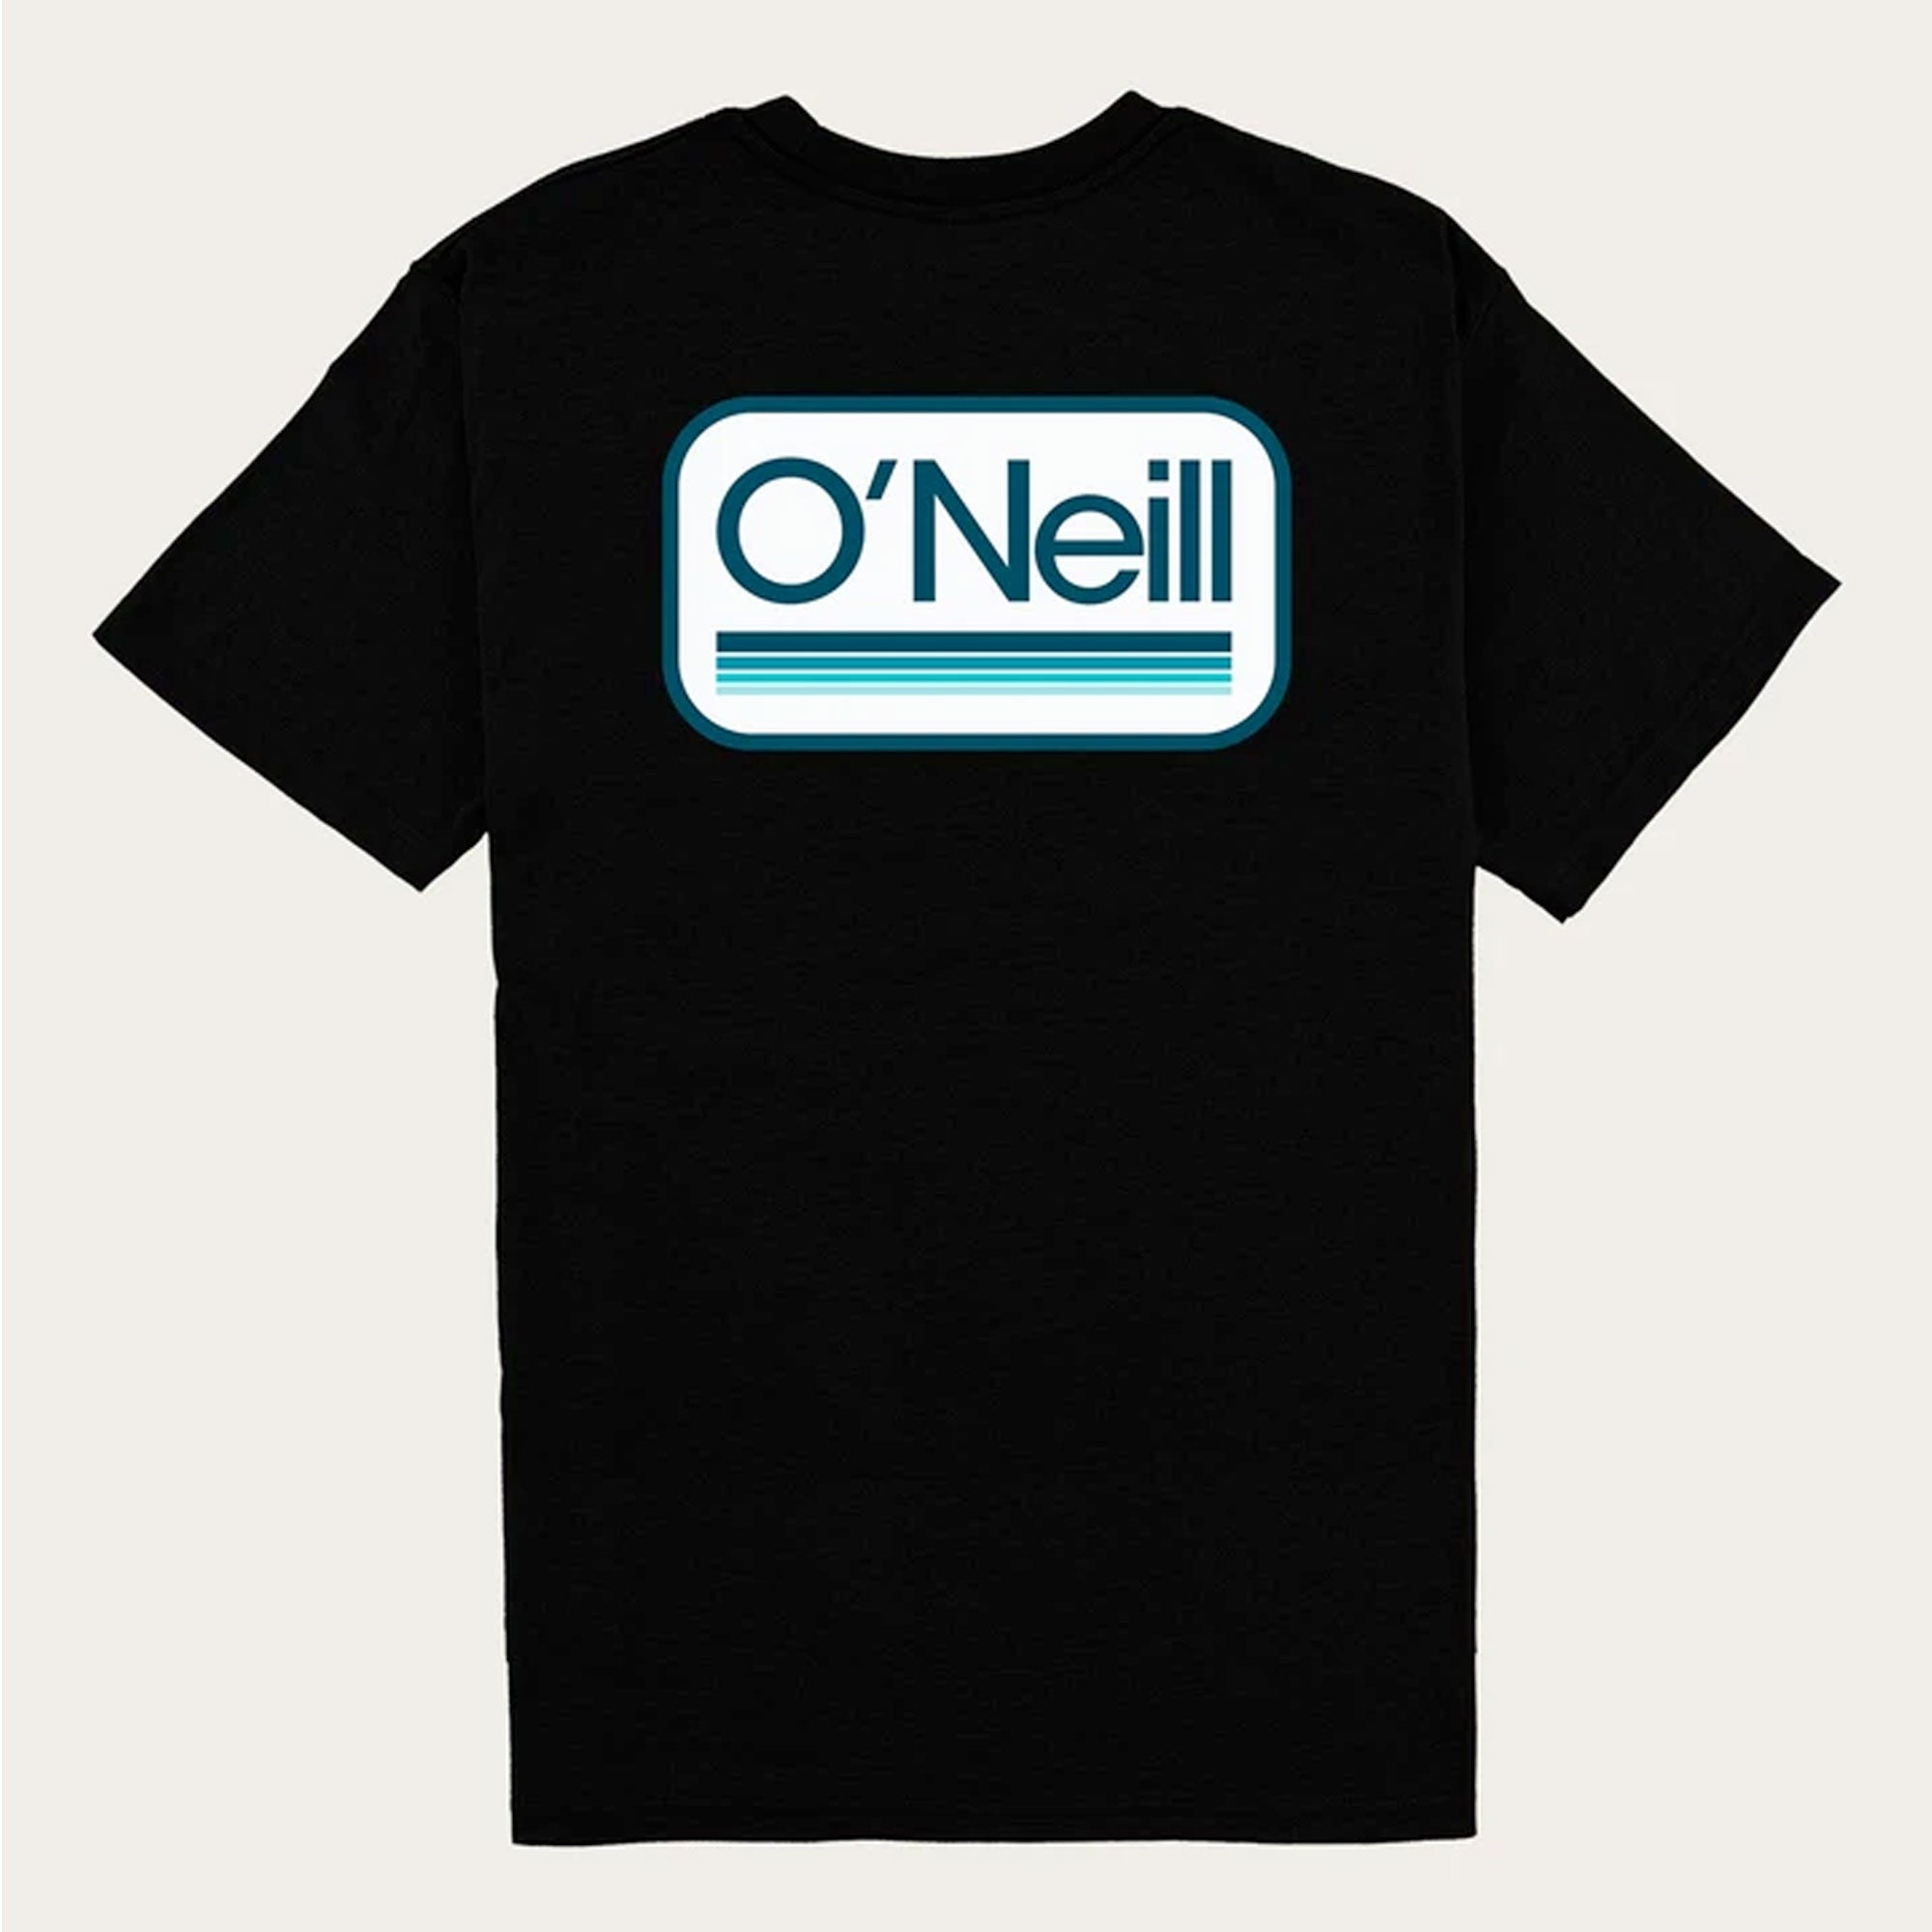 O'Neill Headquarters Boy's S/S T-Shirt